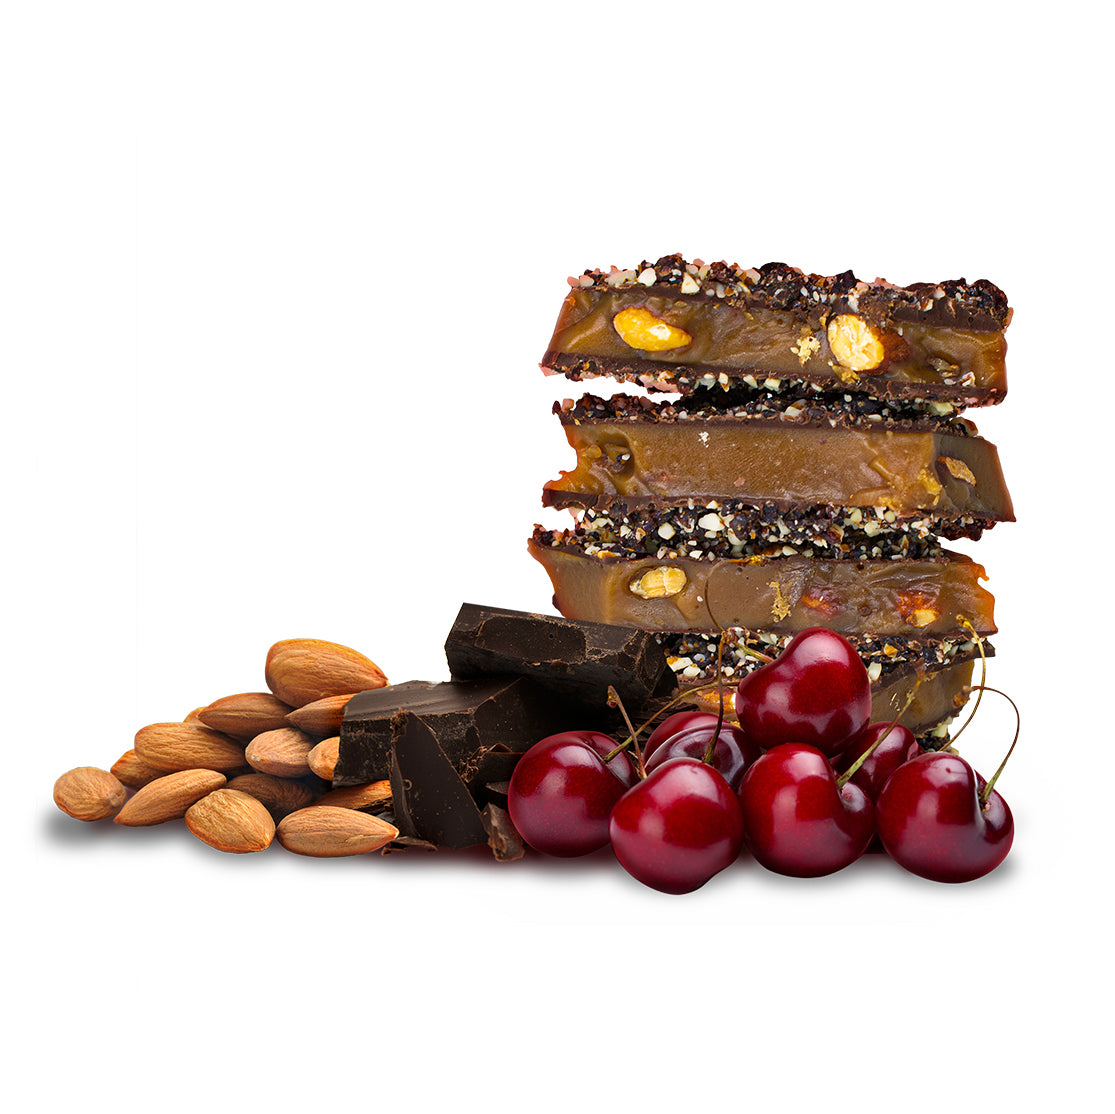 Two Brothers Toffee:  Cherry Toffee front view with dark chocolate, almonds, and cherries.